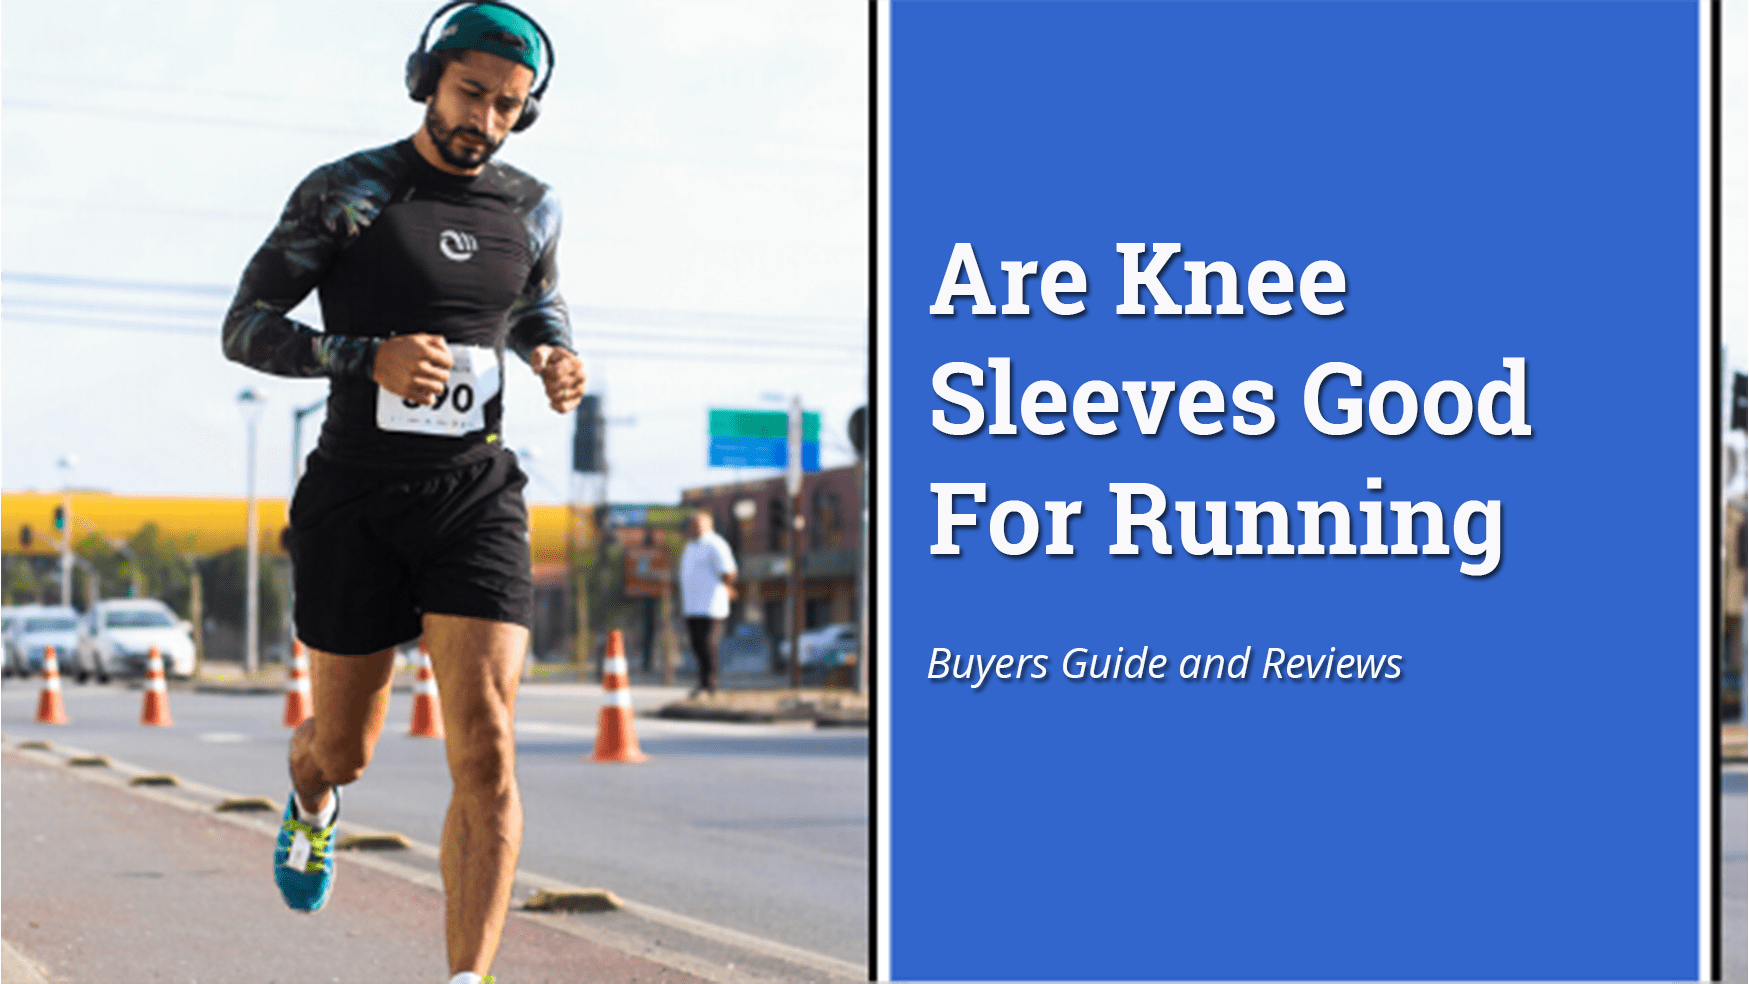 Are Knee Sleeves Good For Running